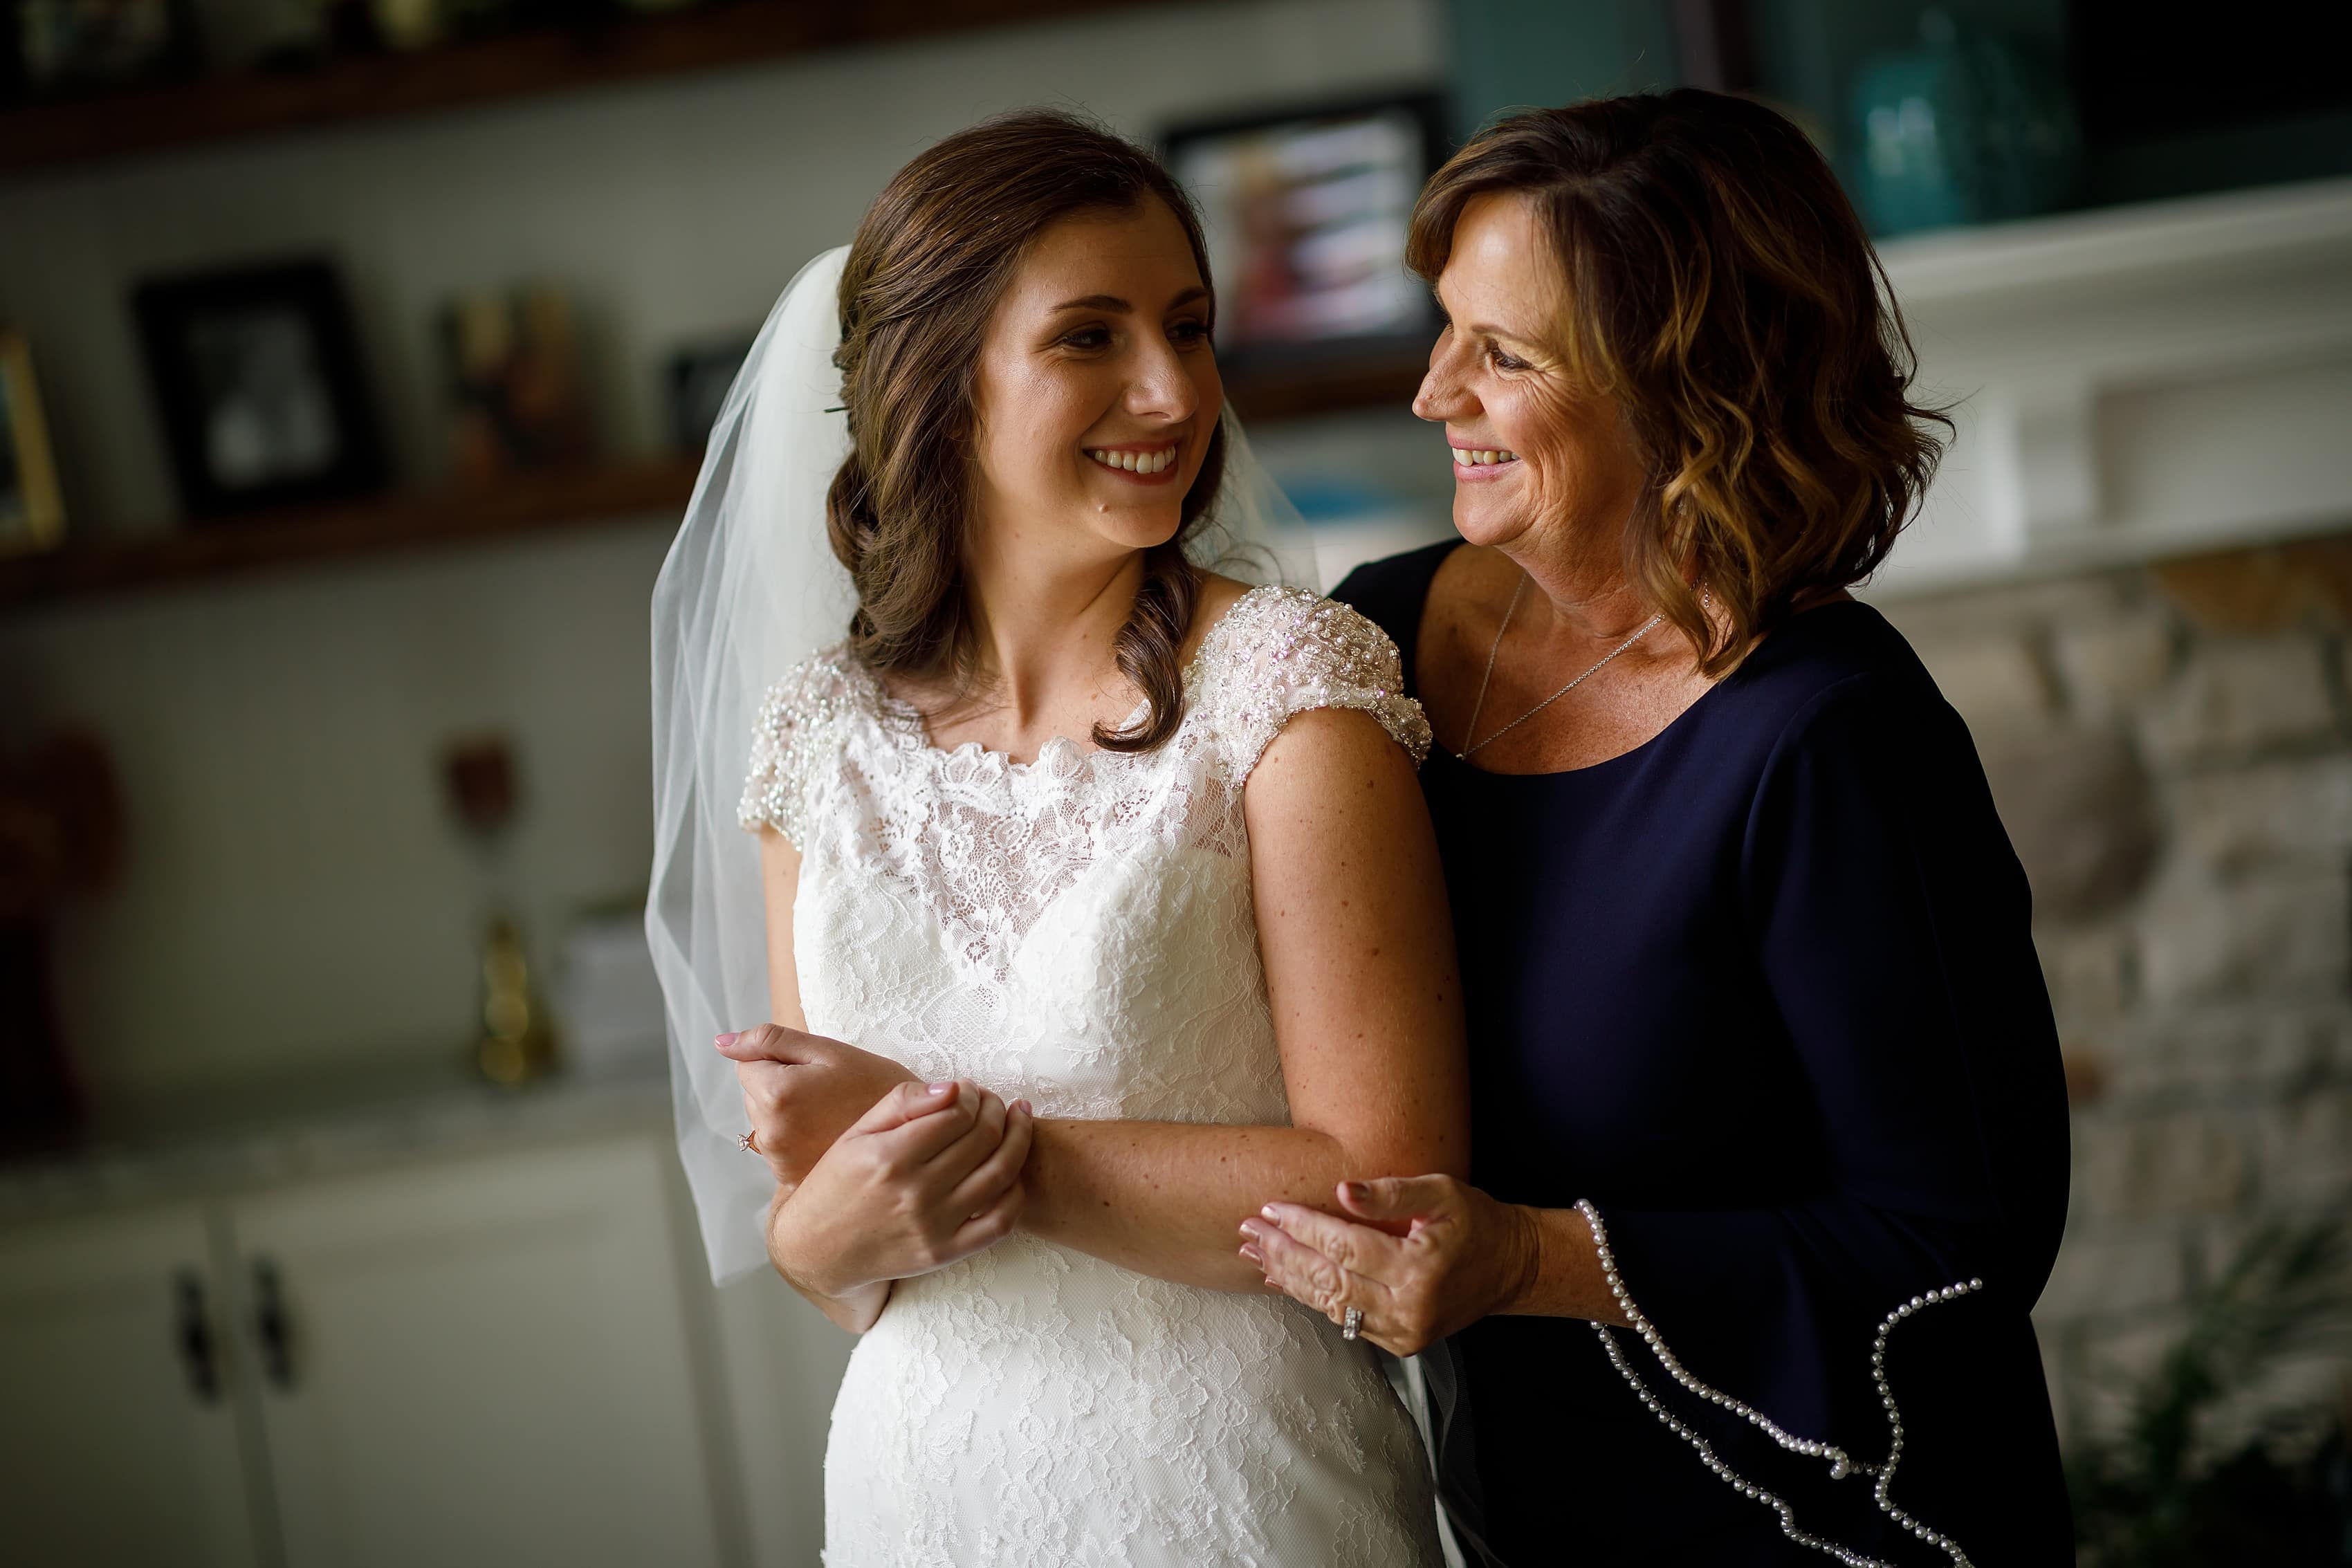 Mother hugs her daughter the bride while getting ready for wedding